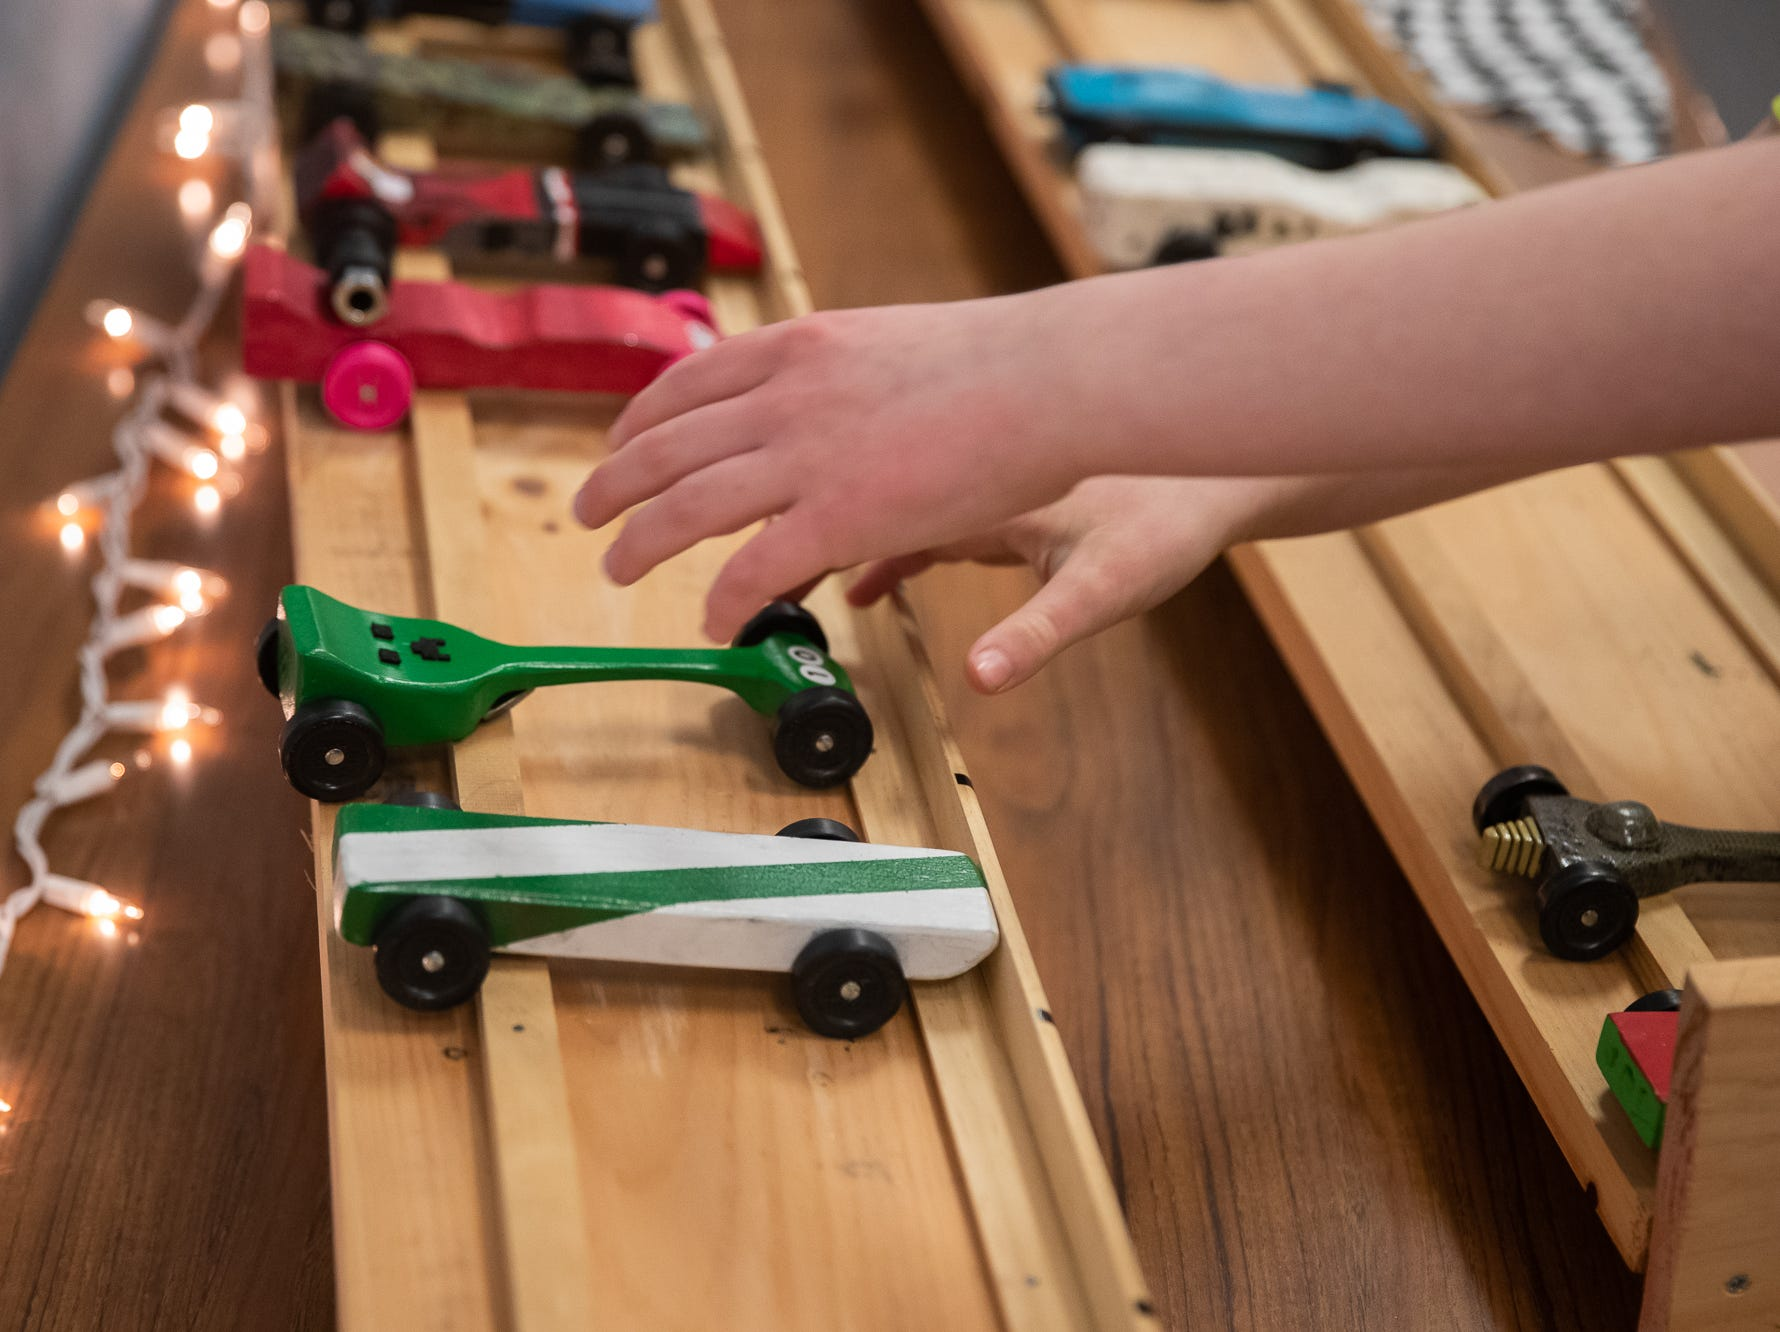 Cub scouts grab their pinewood cars during the cub scouts pack 127 Pinewood Derby event at Lincoln Intermediate Unit 12, Sunday, Feb. 10 in New Oxford. The scouts had a month to design their custom pinewood cars to race in the event.